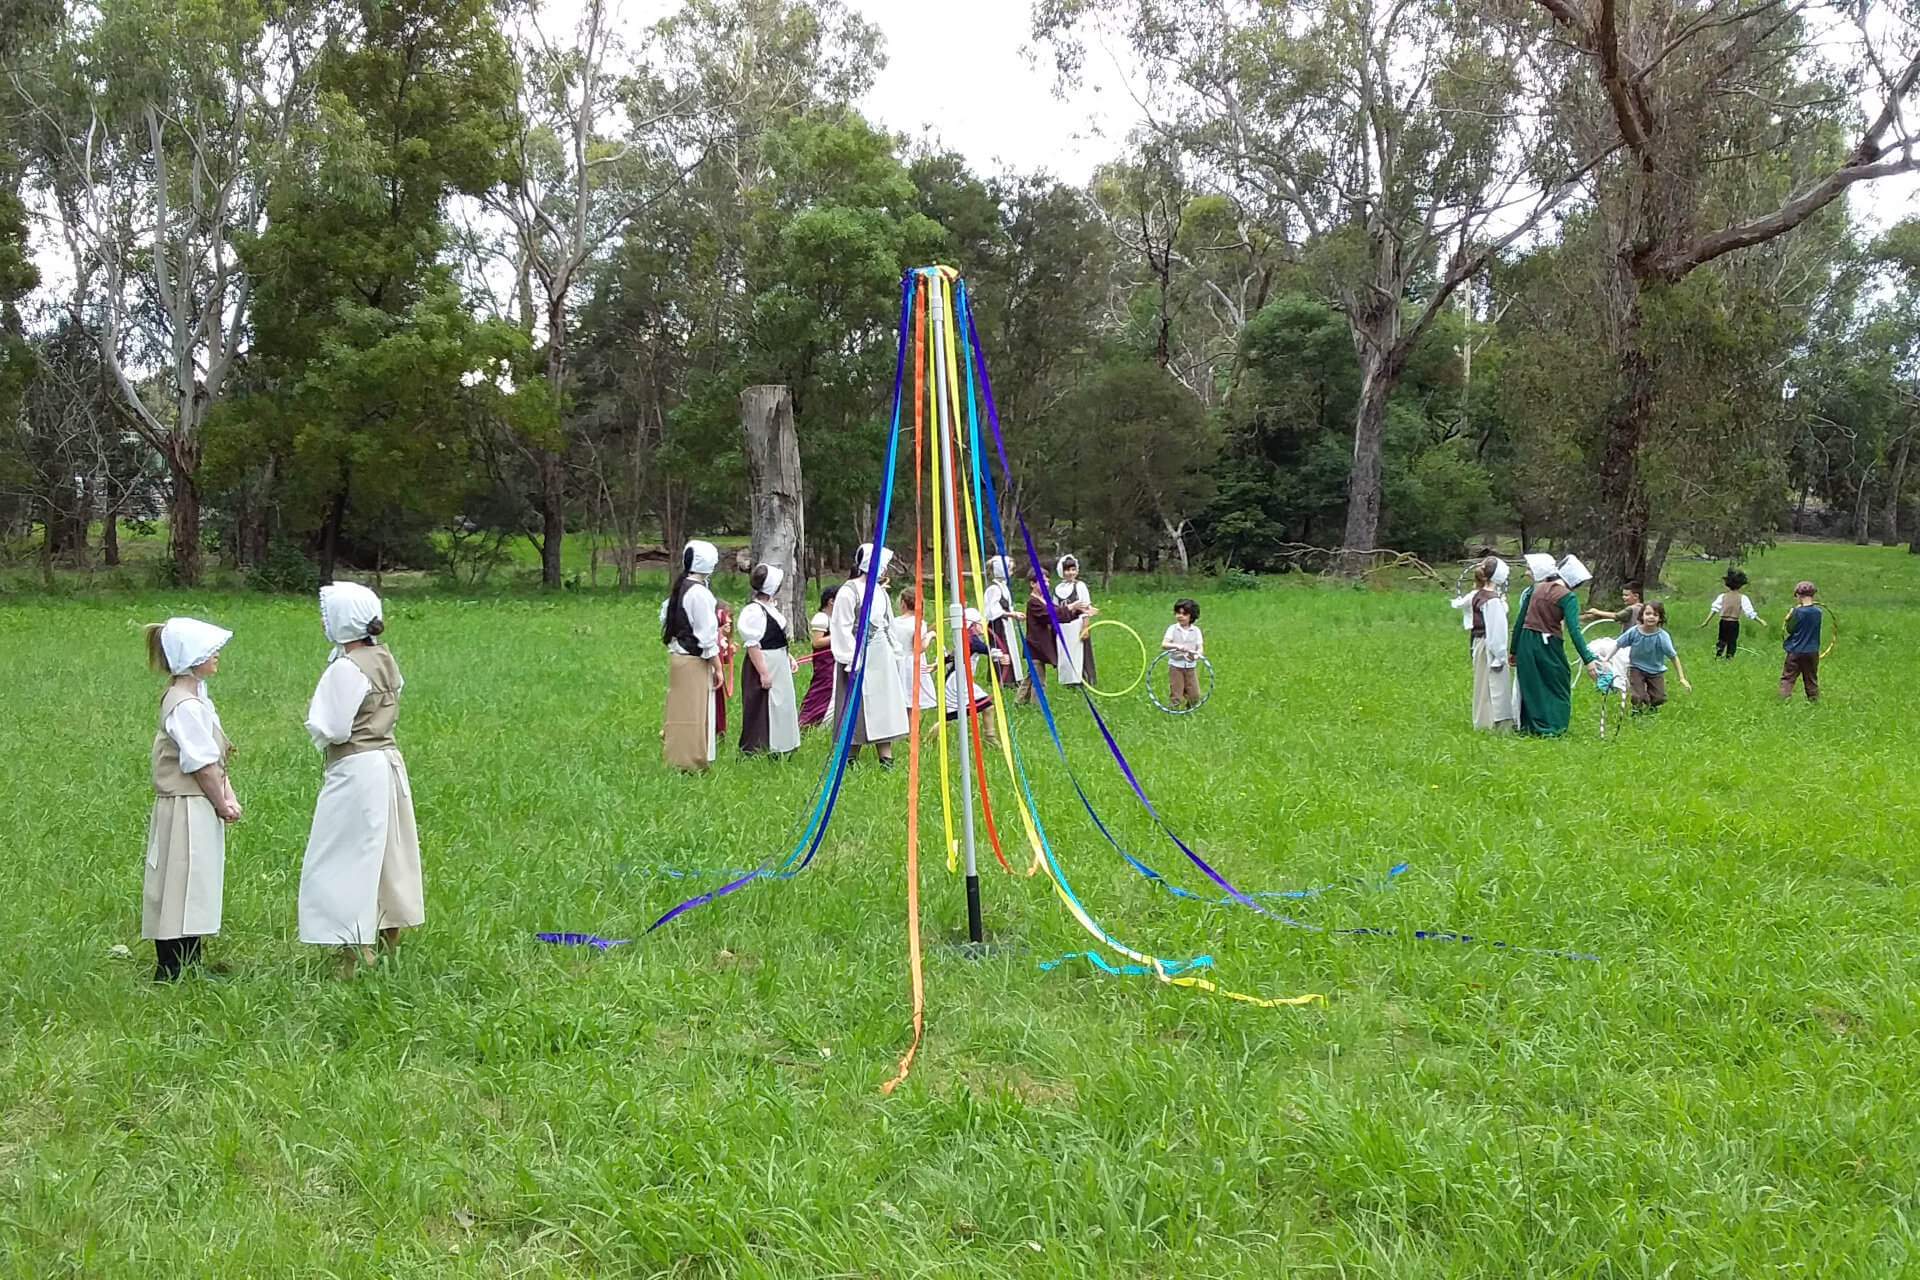 Performance 2020 - Maypole and Hoops